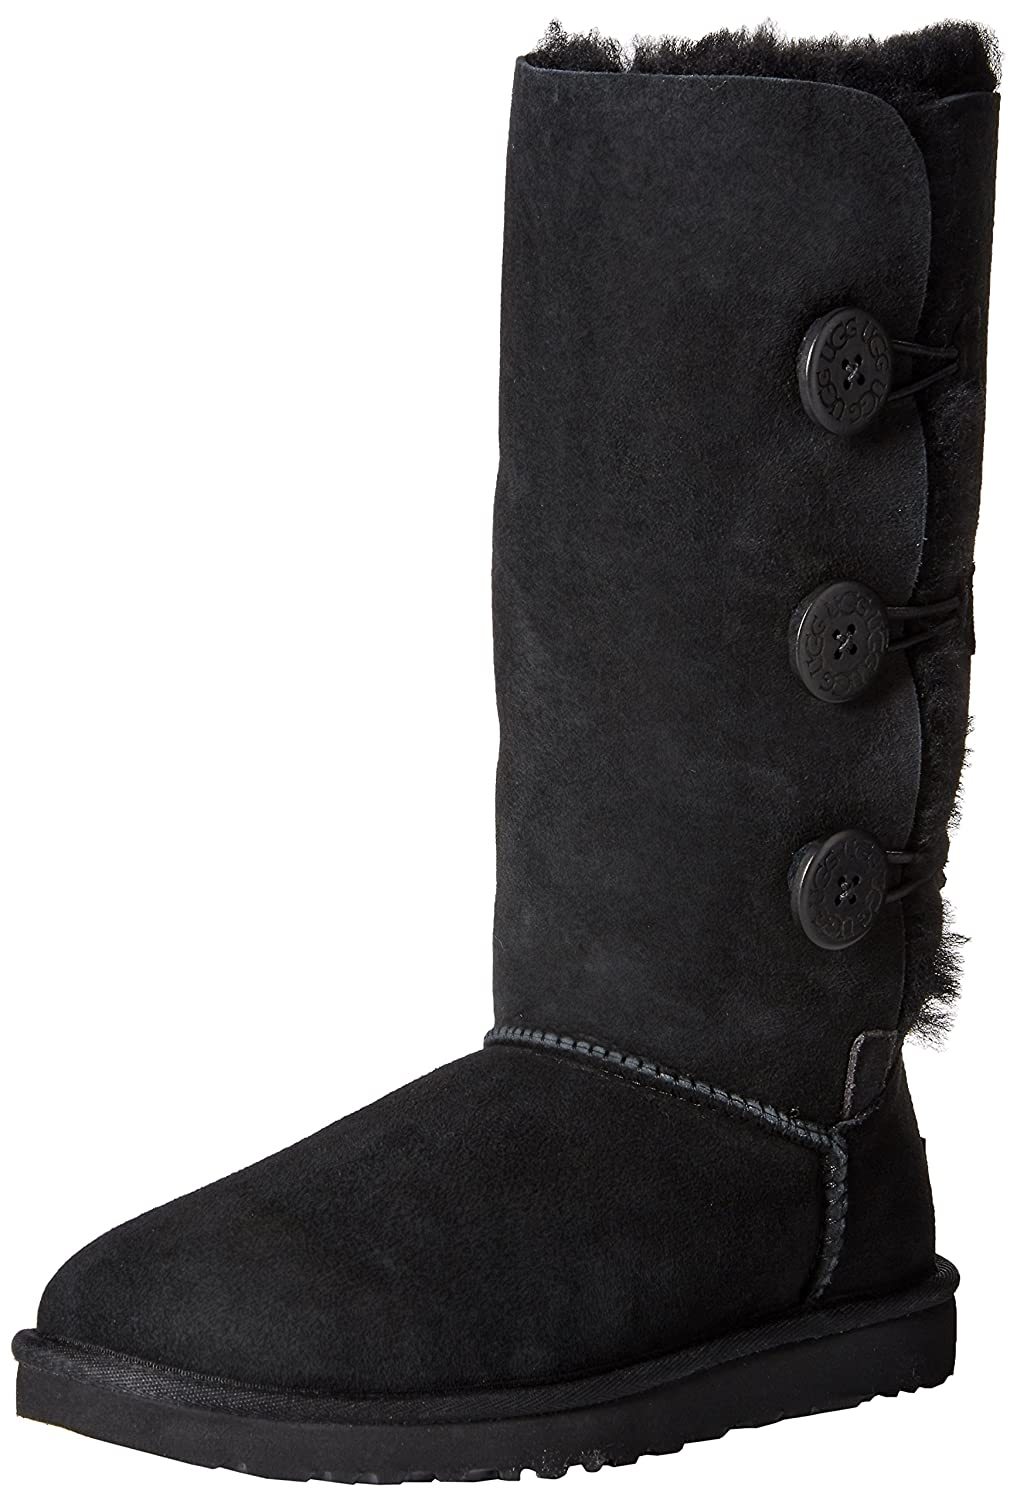 amazon com ugg australia women s bailey button triplet boots rh amazon com